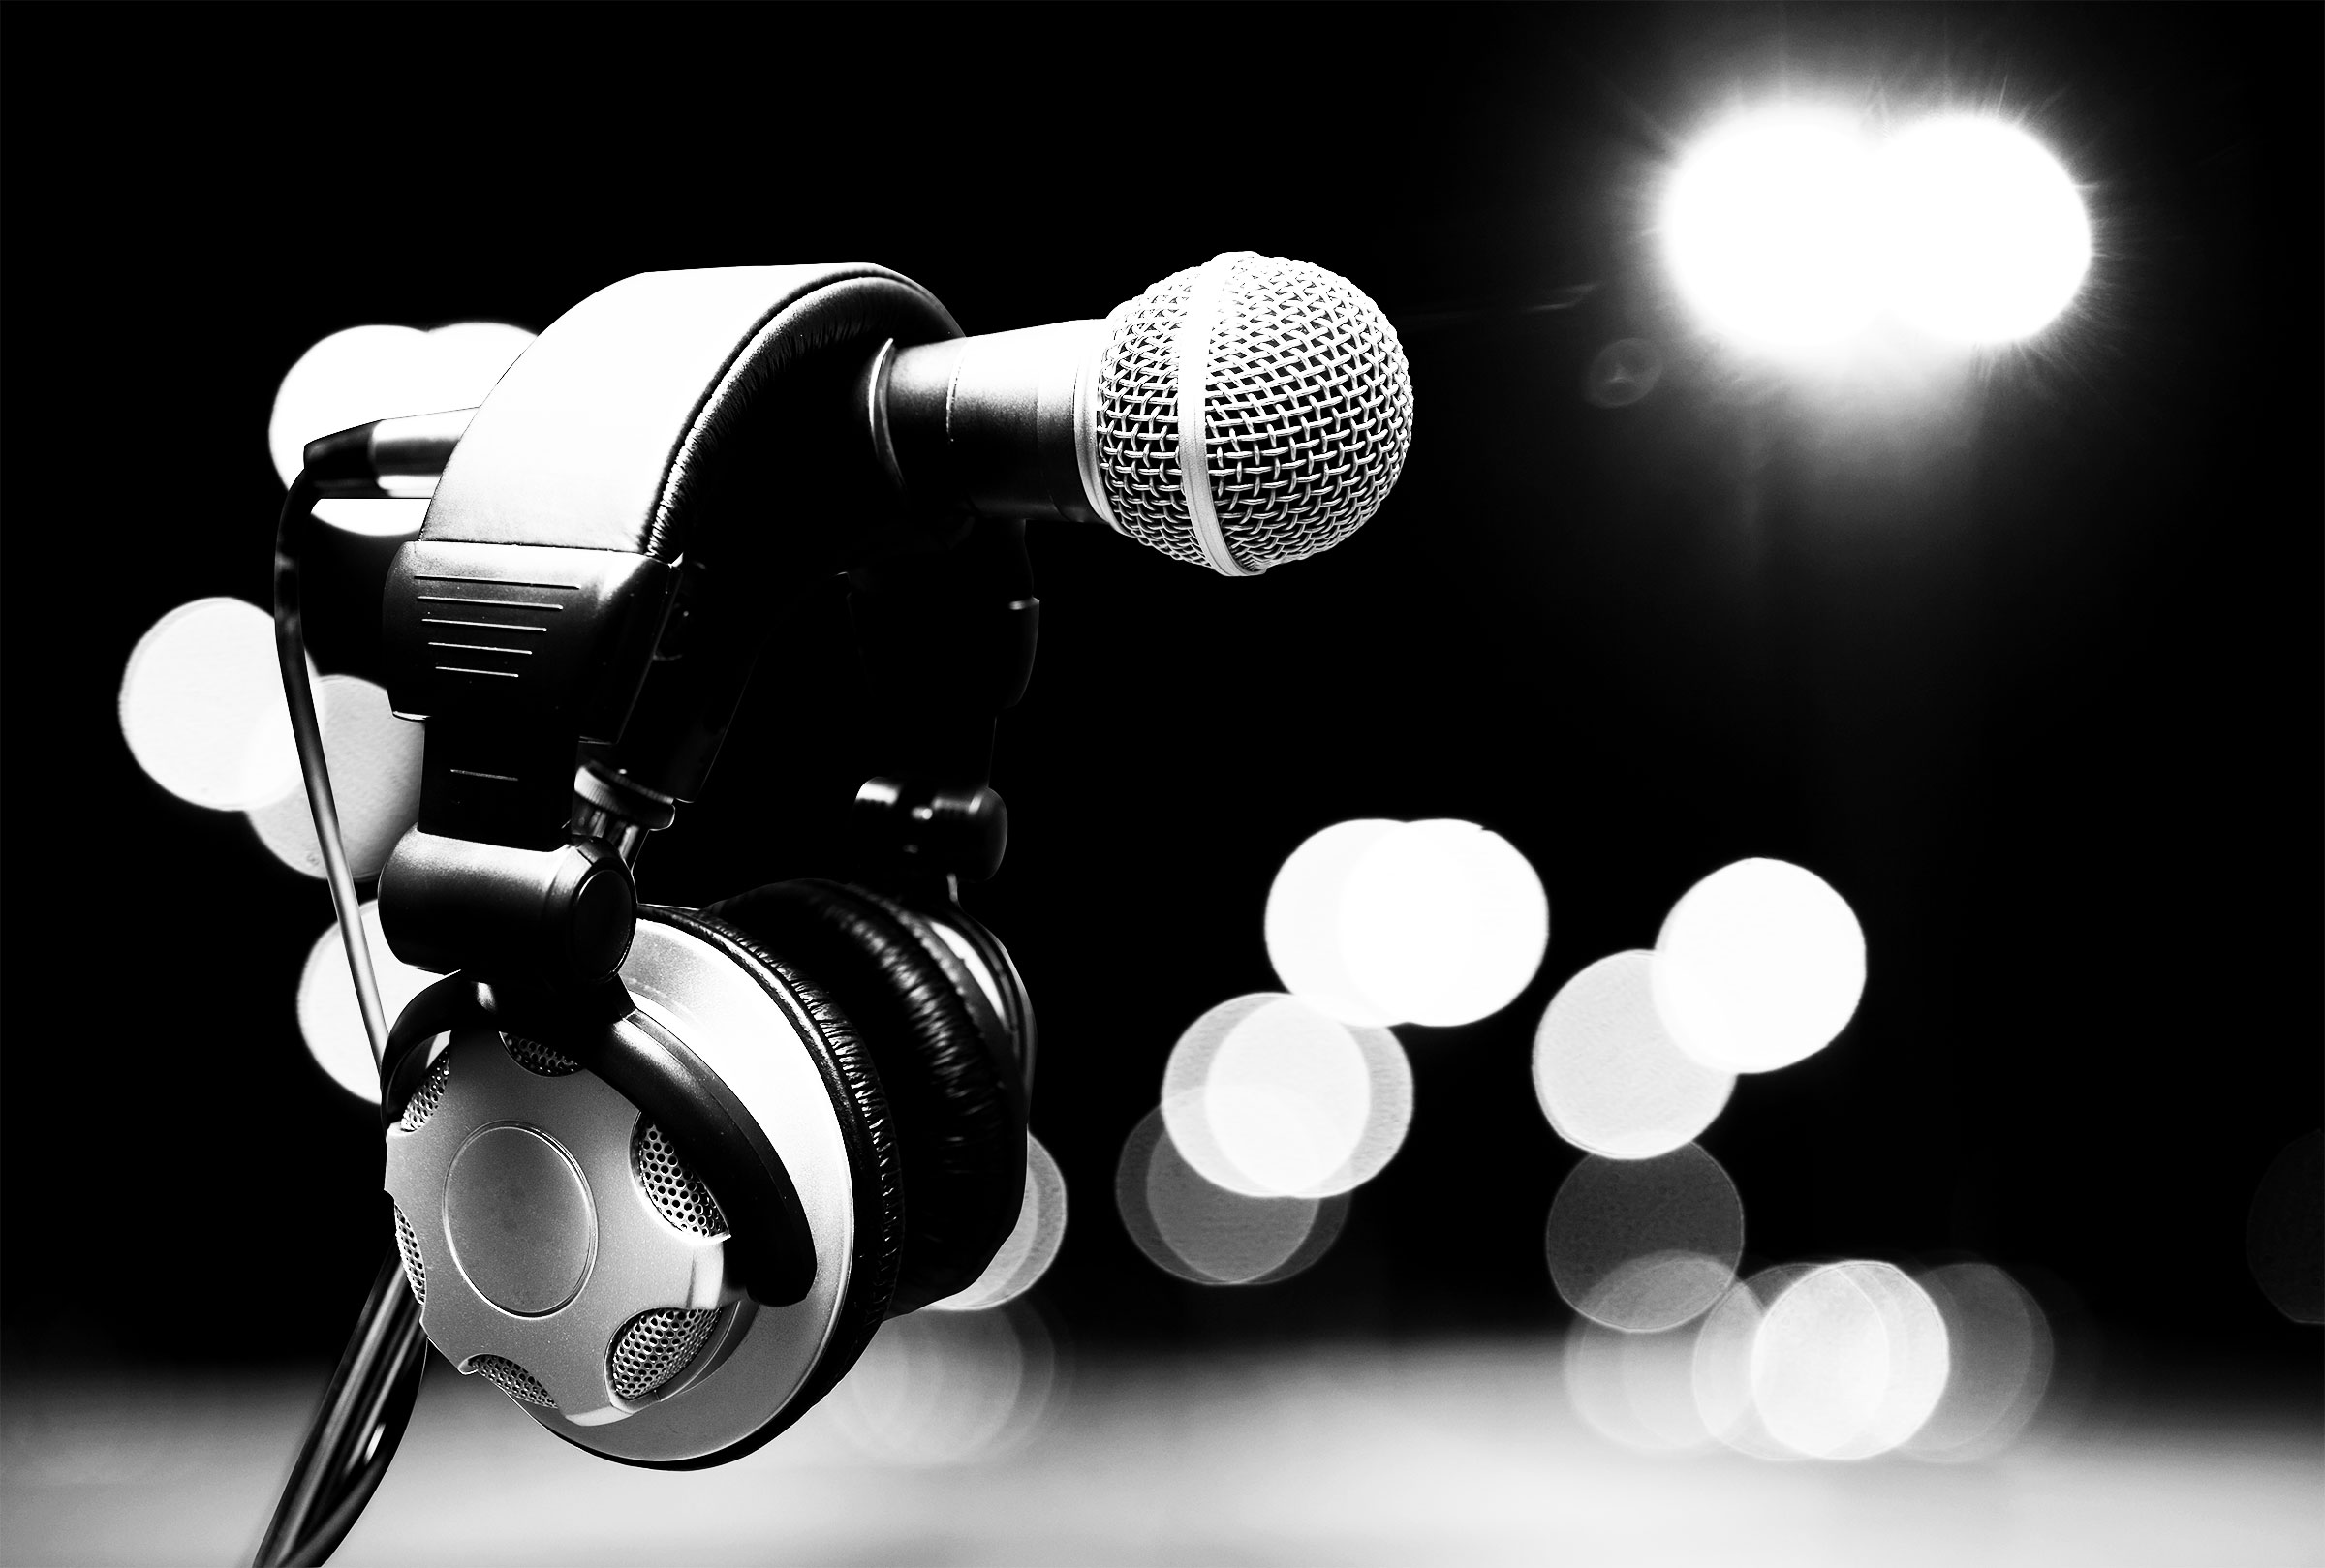 Microphone_Headphones_BW